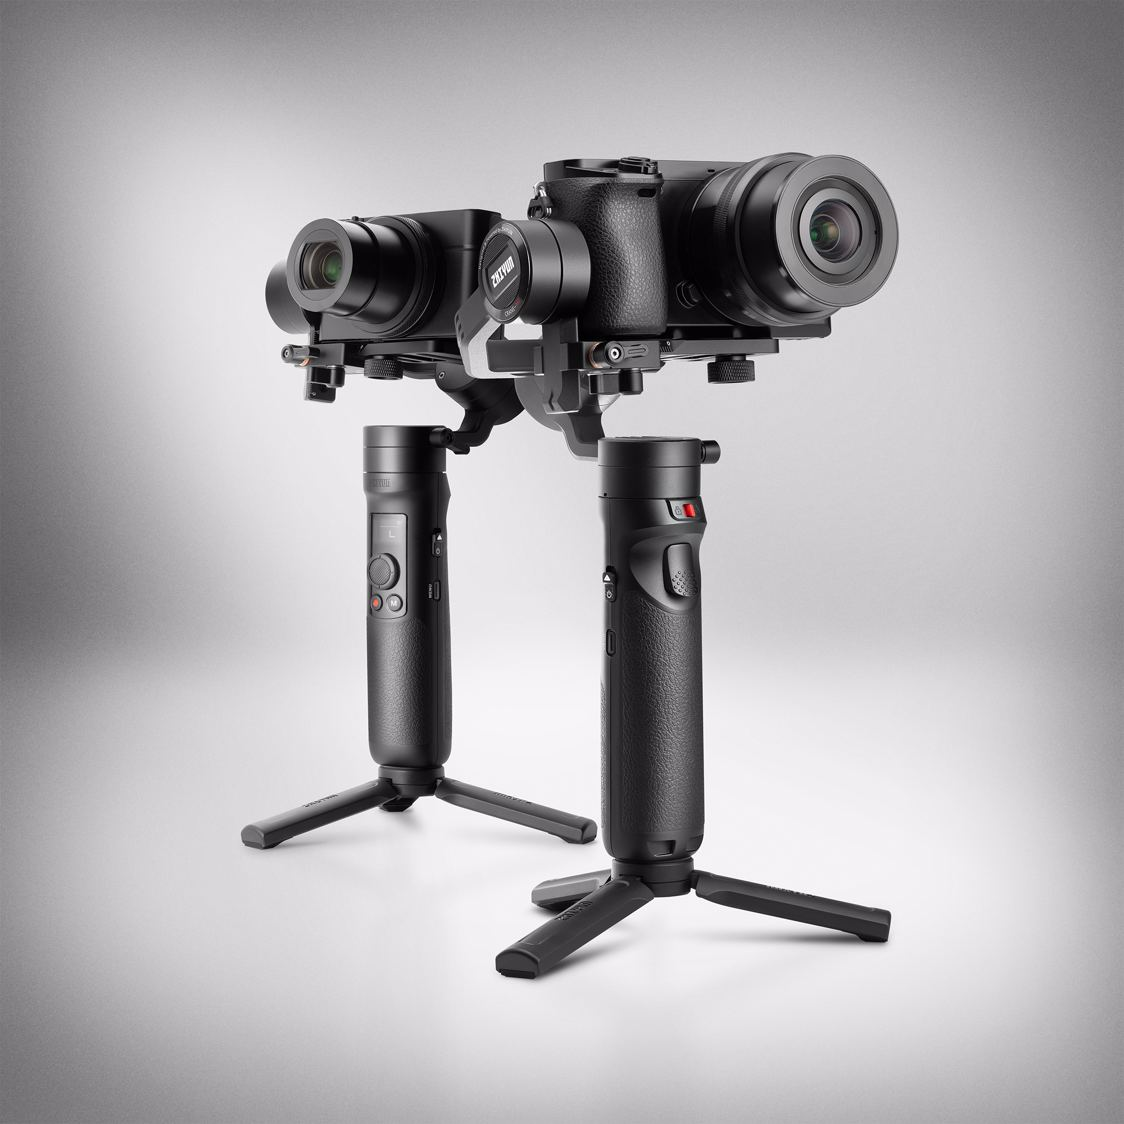 Buy Zhiyun Crane M2 - Incl. shipping